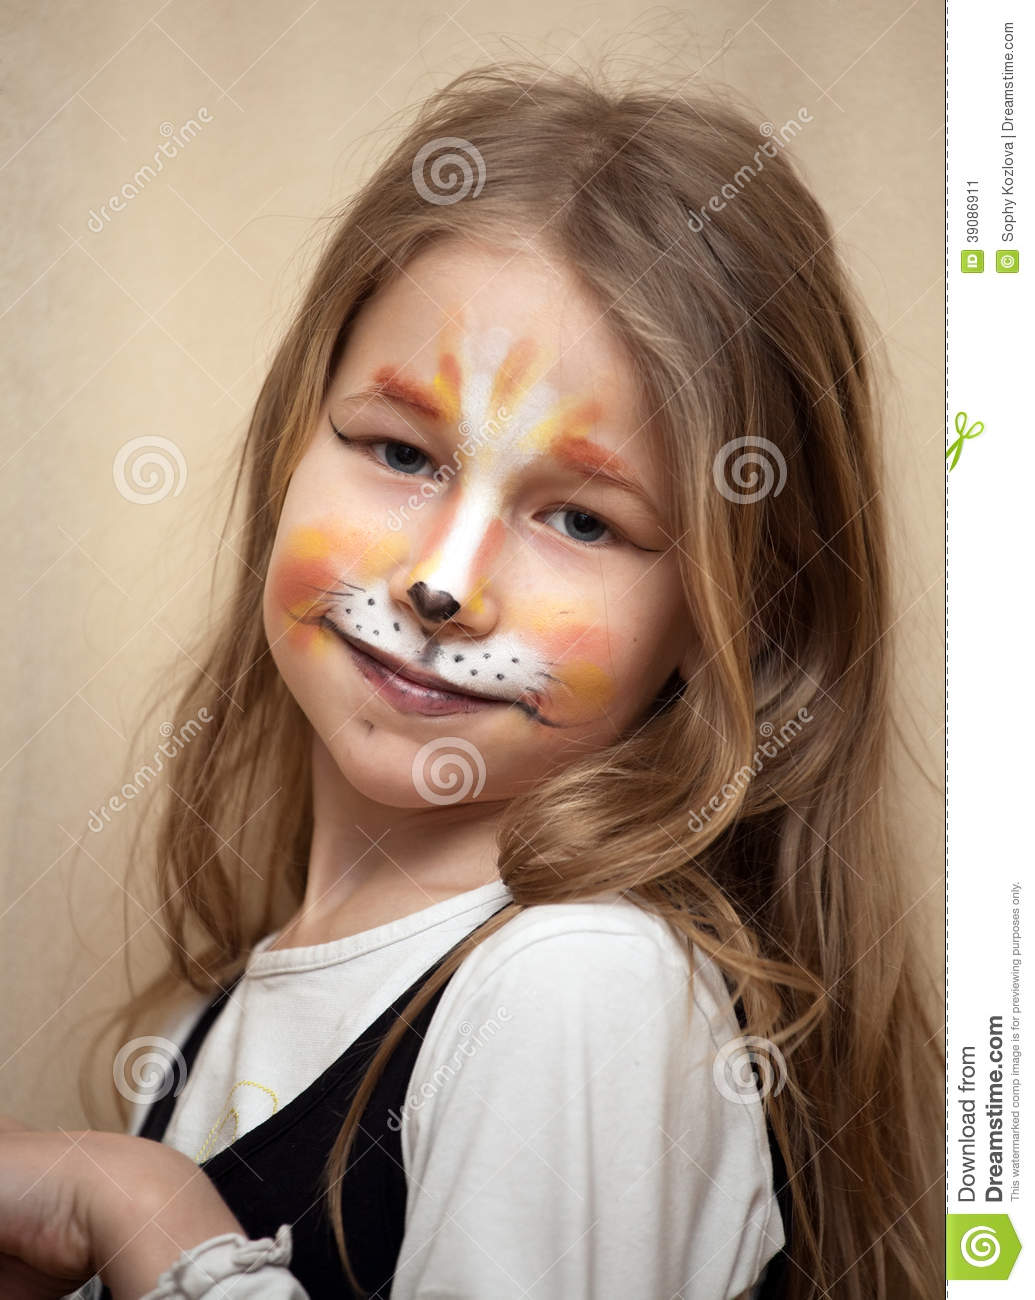 little girl with cat painting makeup portrait stock image. Black Bedroom Furniture Sets. Home Design Ideas